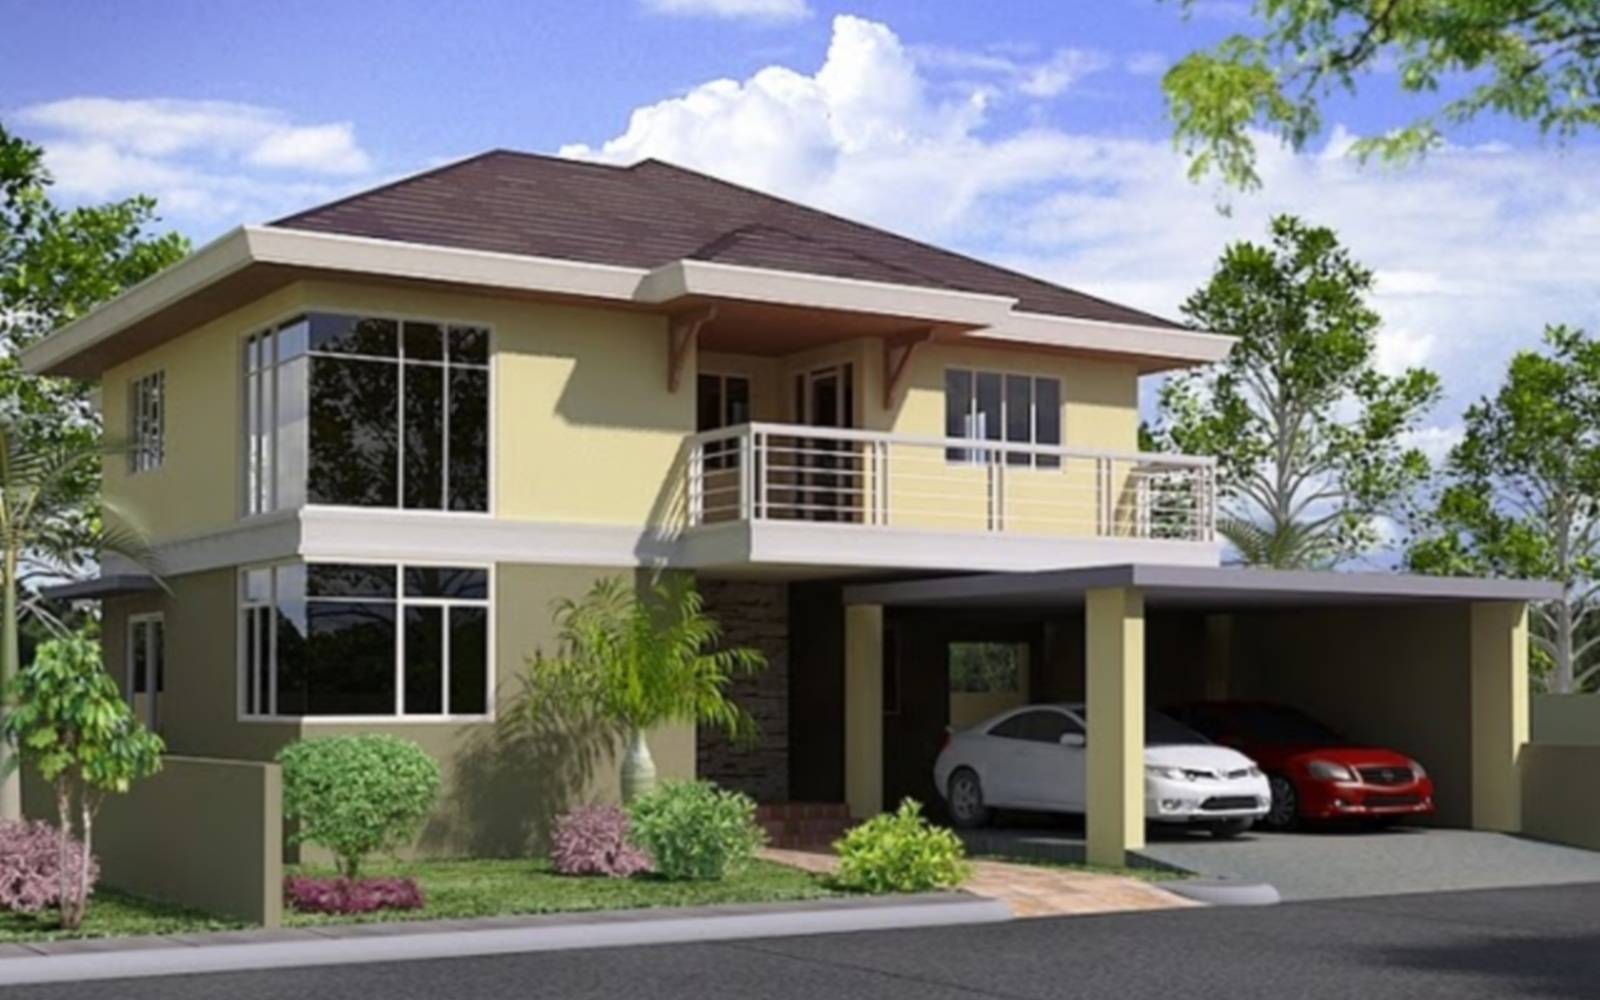 Image two storey house philippines joy studio design for Two storey house design philippines